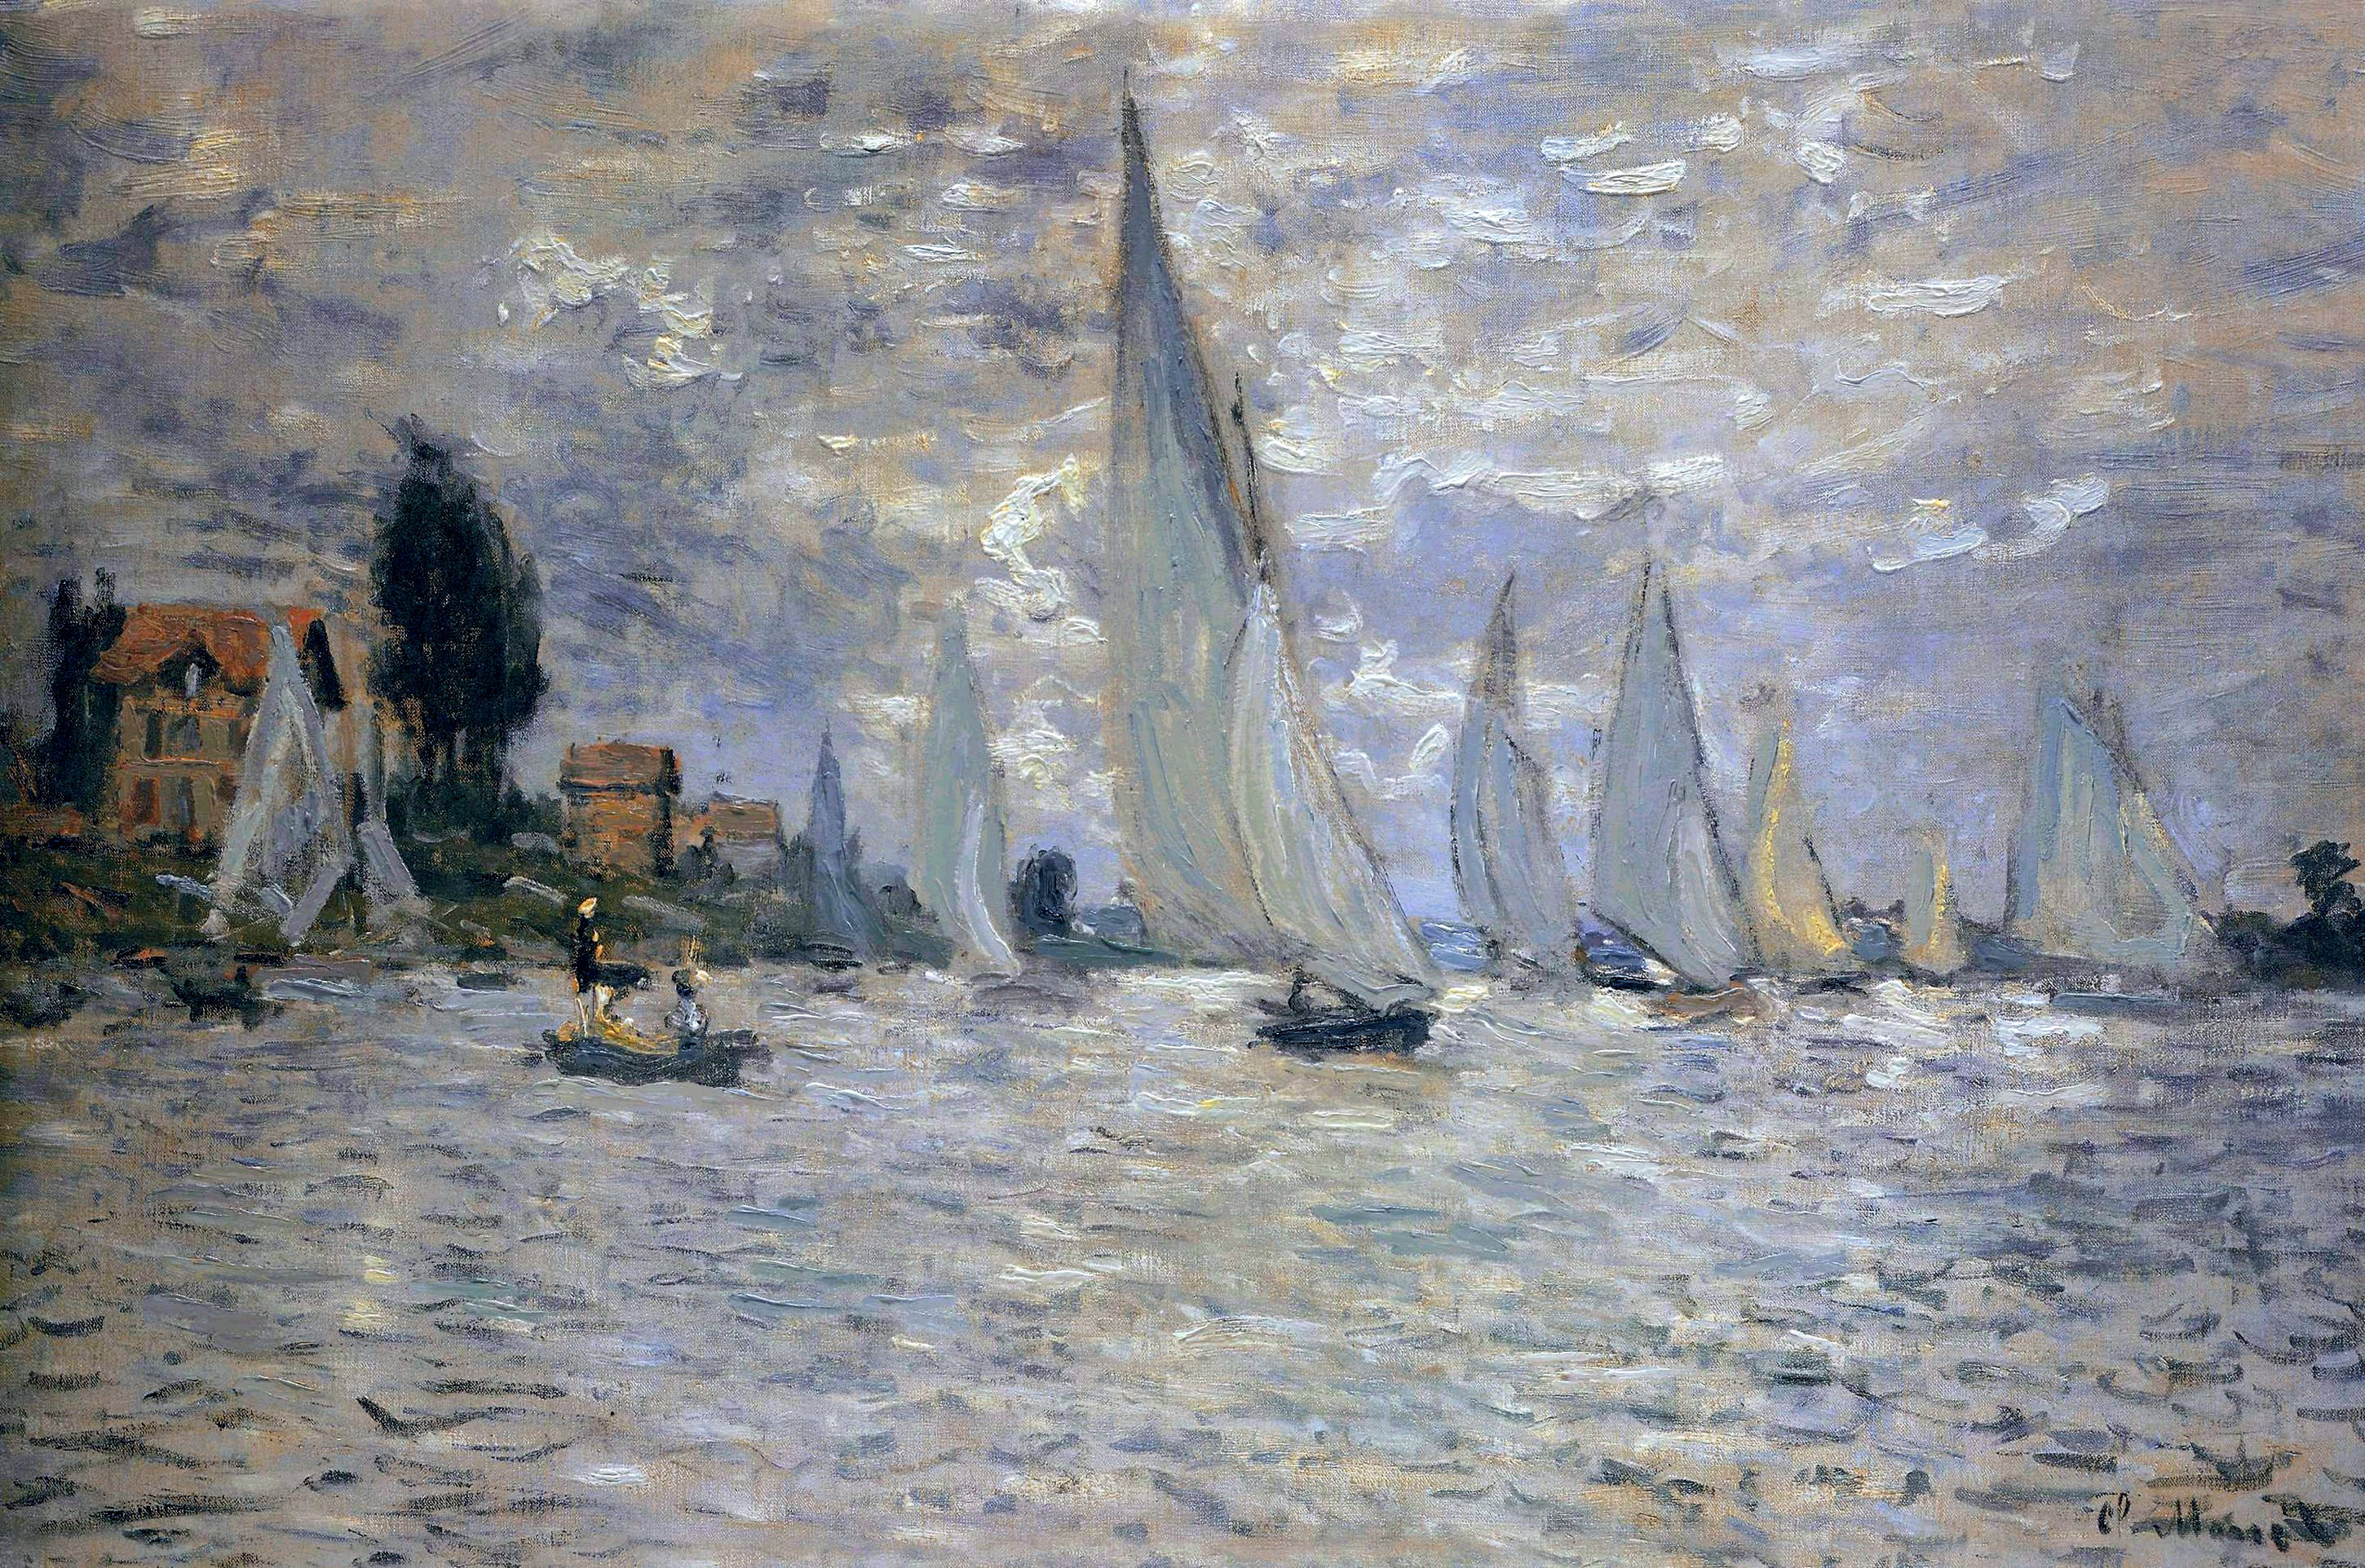 The Boats, Regatta at Argenteuil, by Claude Monet, circa 1874